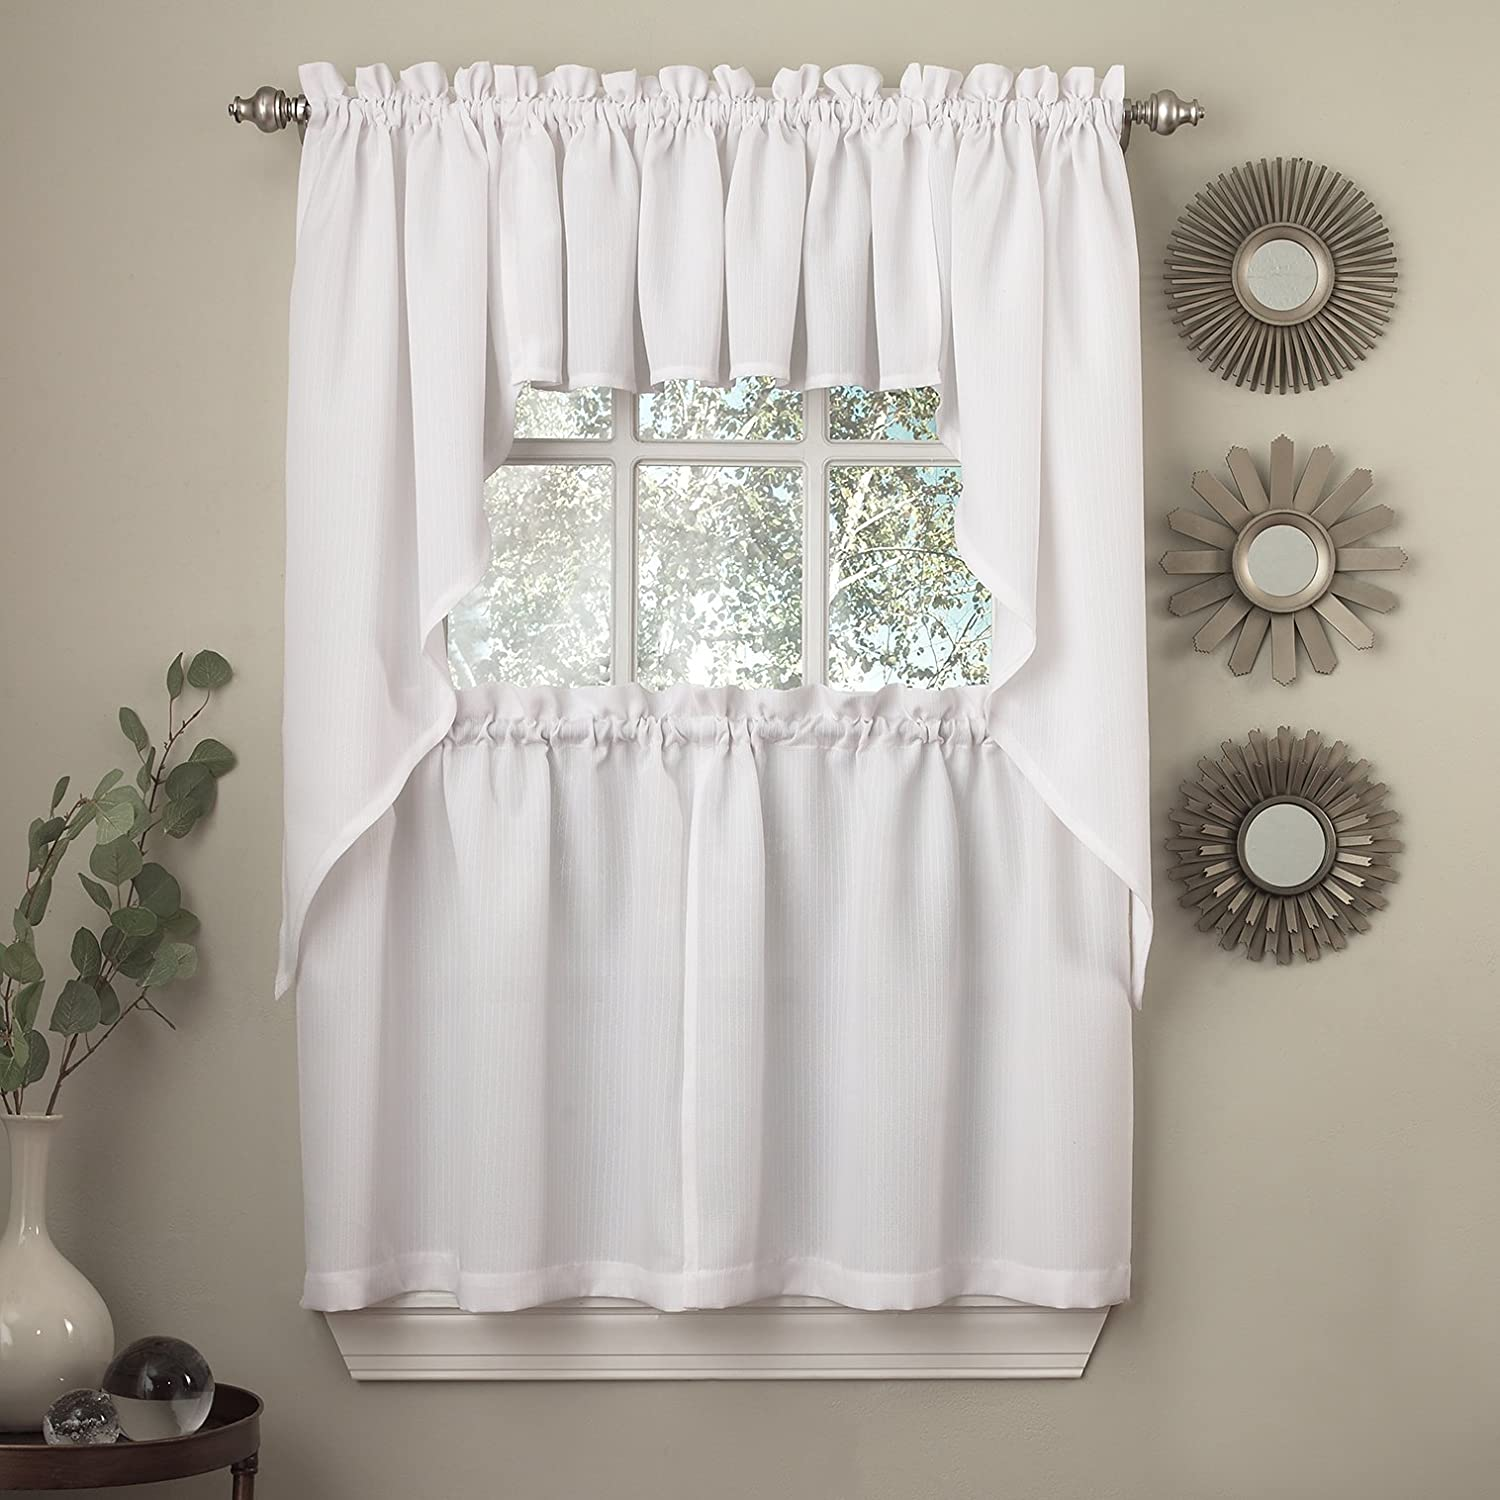 24 Tier Pair Choice 36 Sheer Ivory Swag Sweet Home Collection 5 Pc Kitchen Curtain Set Valance